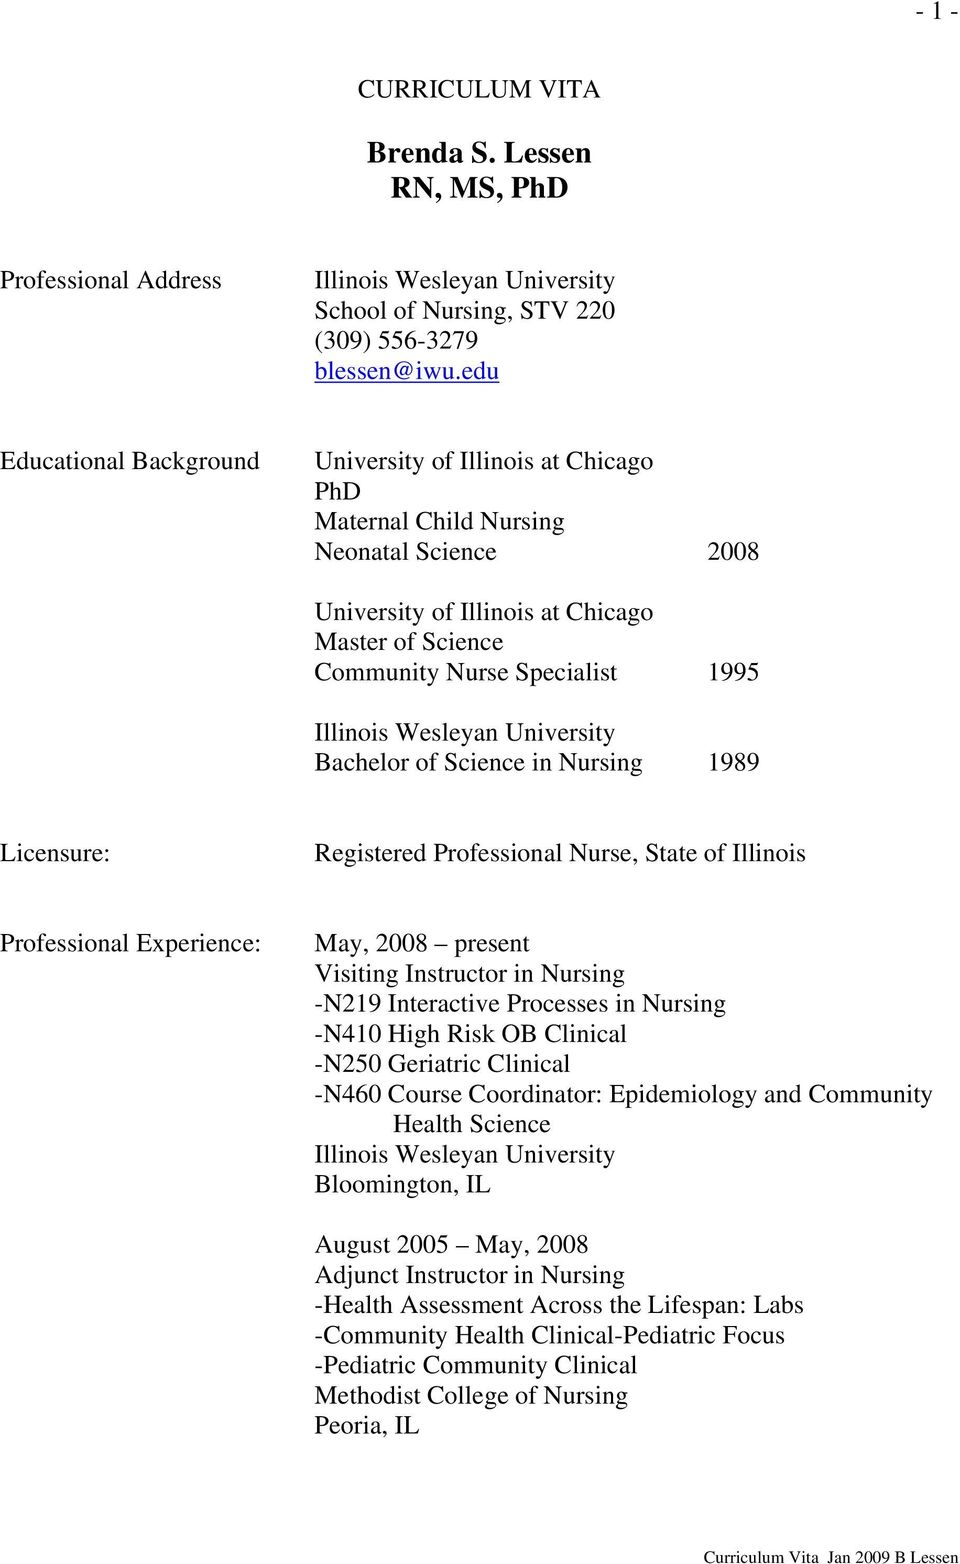 Bachelor of Science in Nursing 1989 Licensure: Registered Professional Nurse, State of Illinois Professional Experience: May, 2008 present Visiting Instructor in Nursing -N219 Interactive Processes